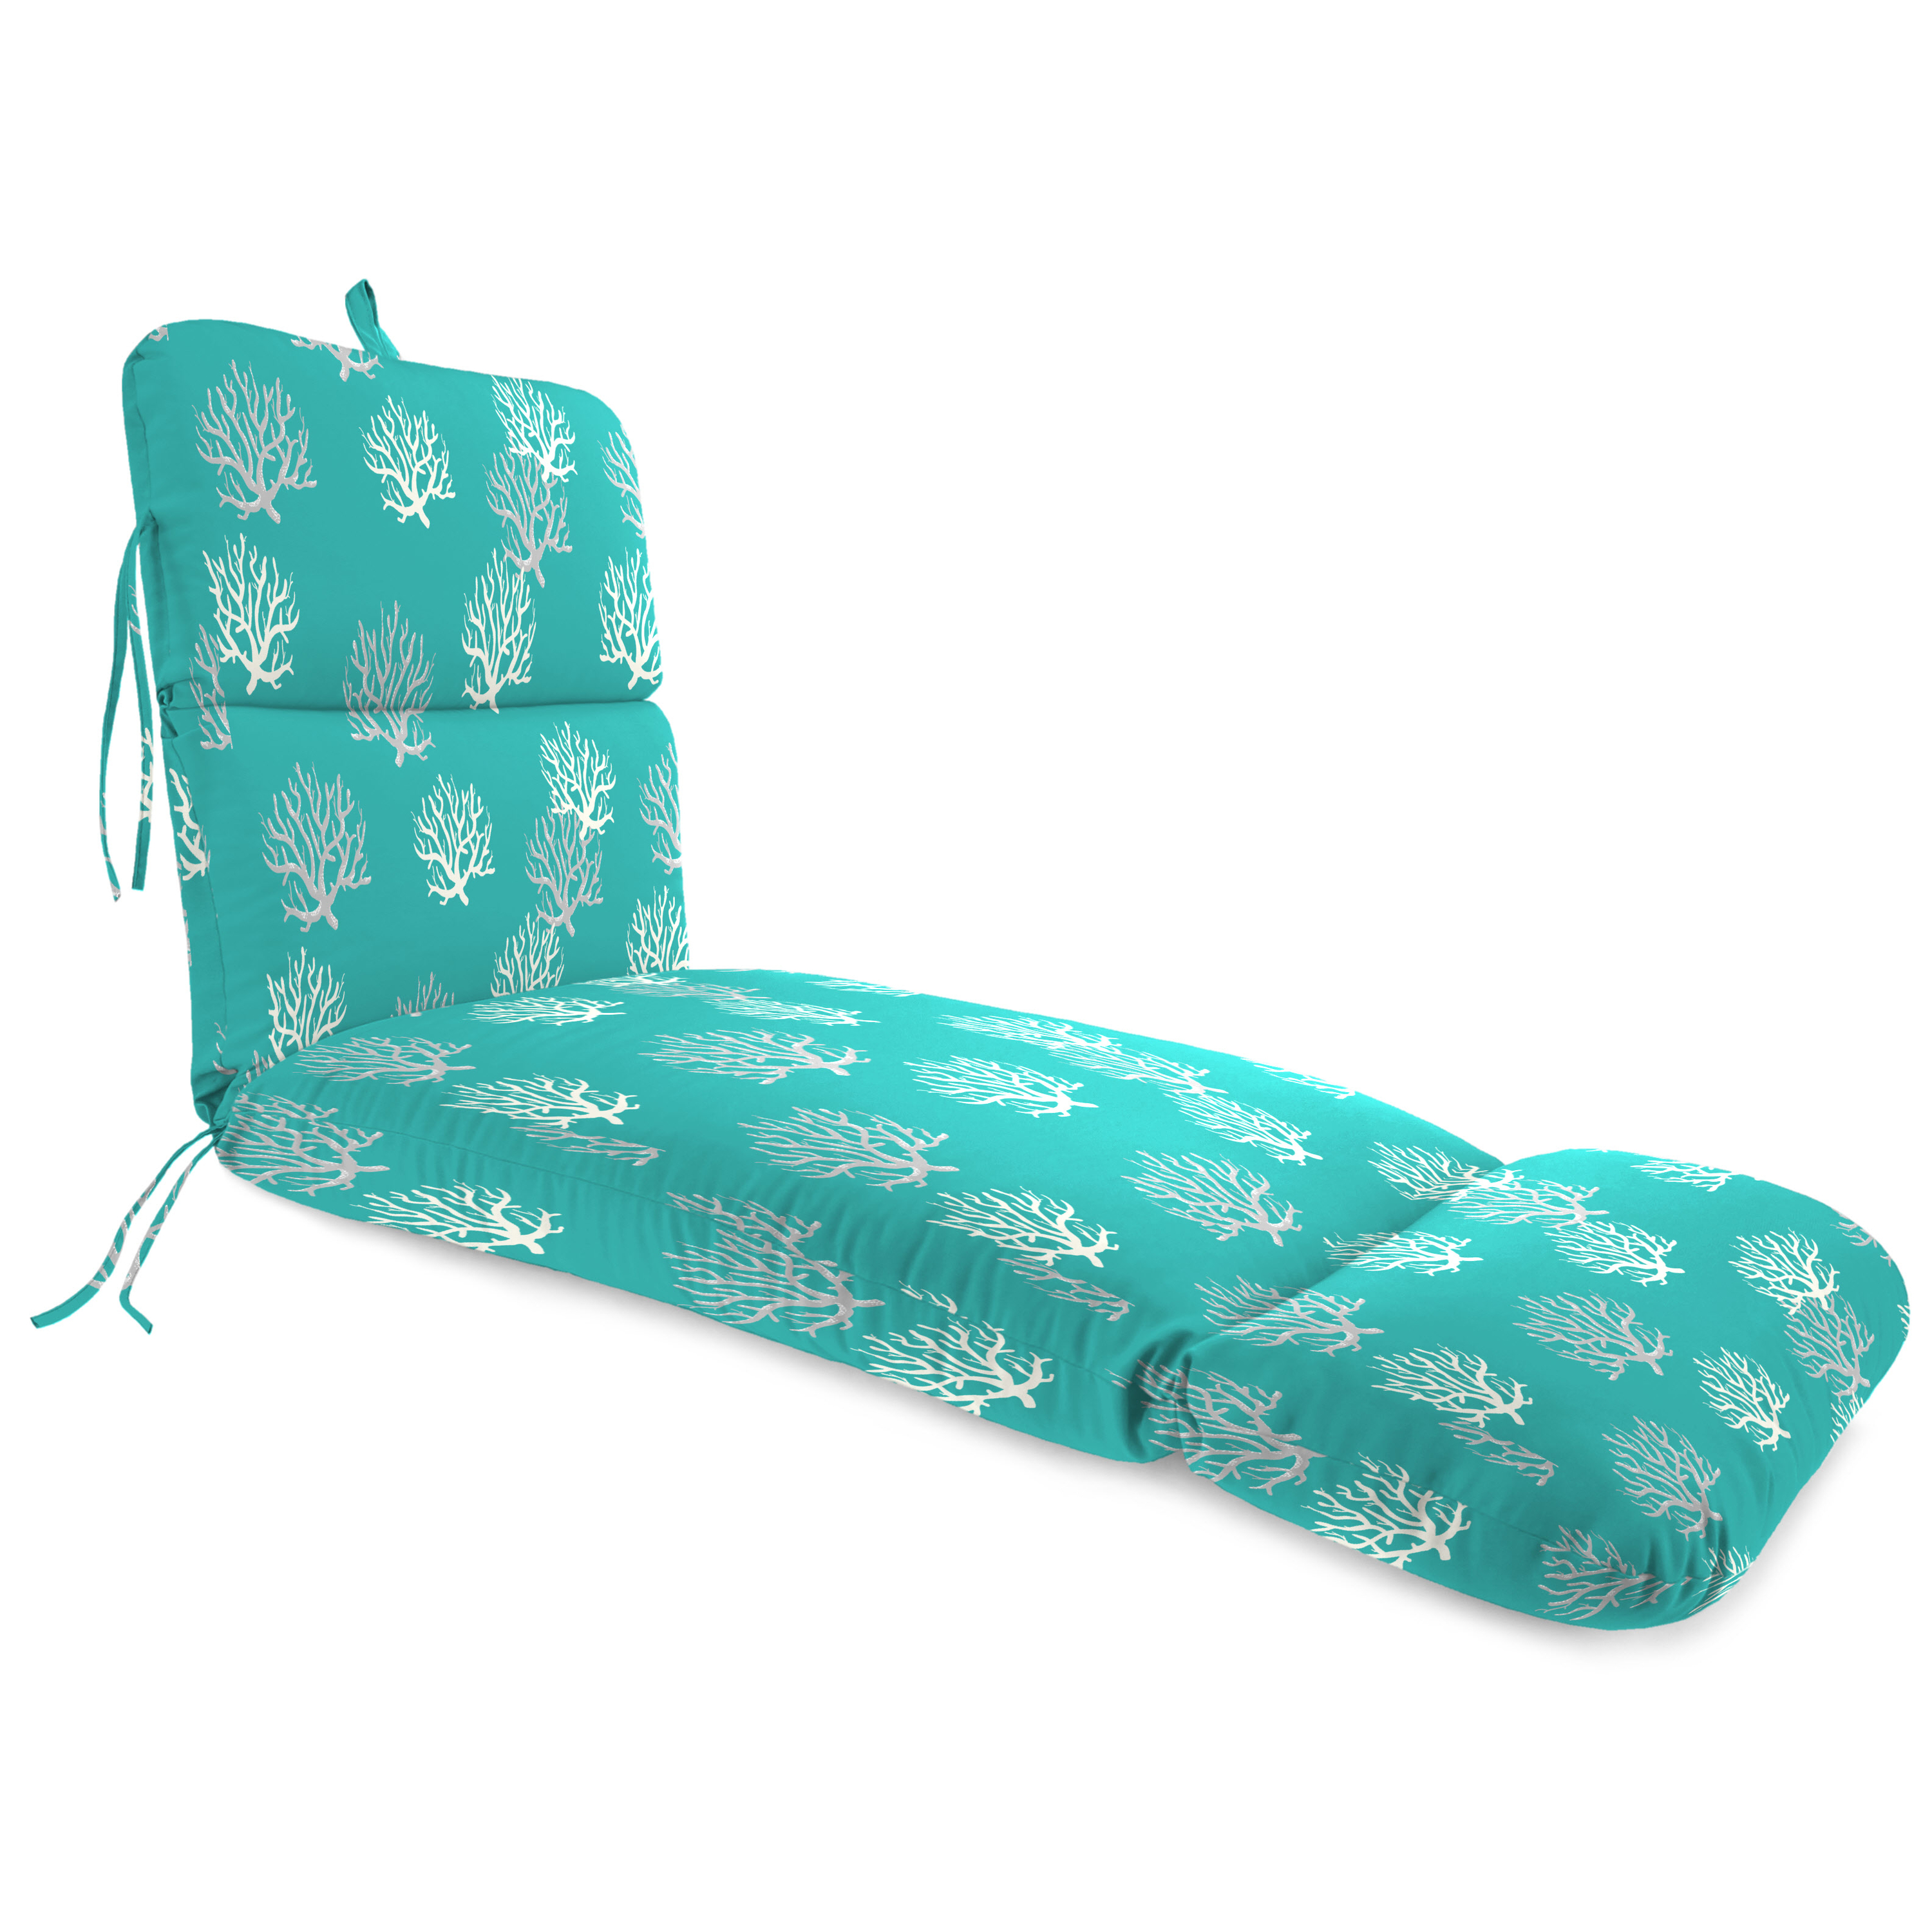 Jordan Manufacturing Outdoor Chaise Lounge Cushion,Isadella Ocean